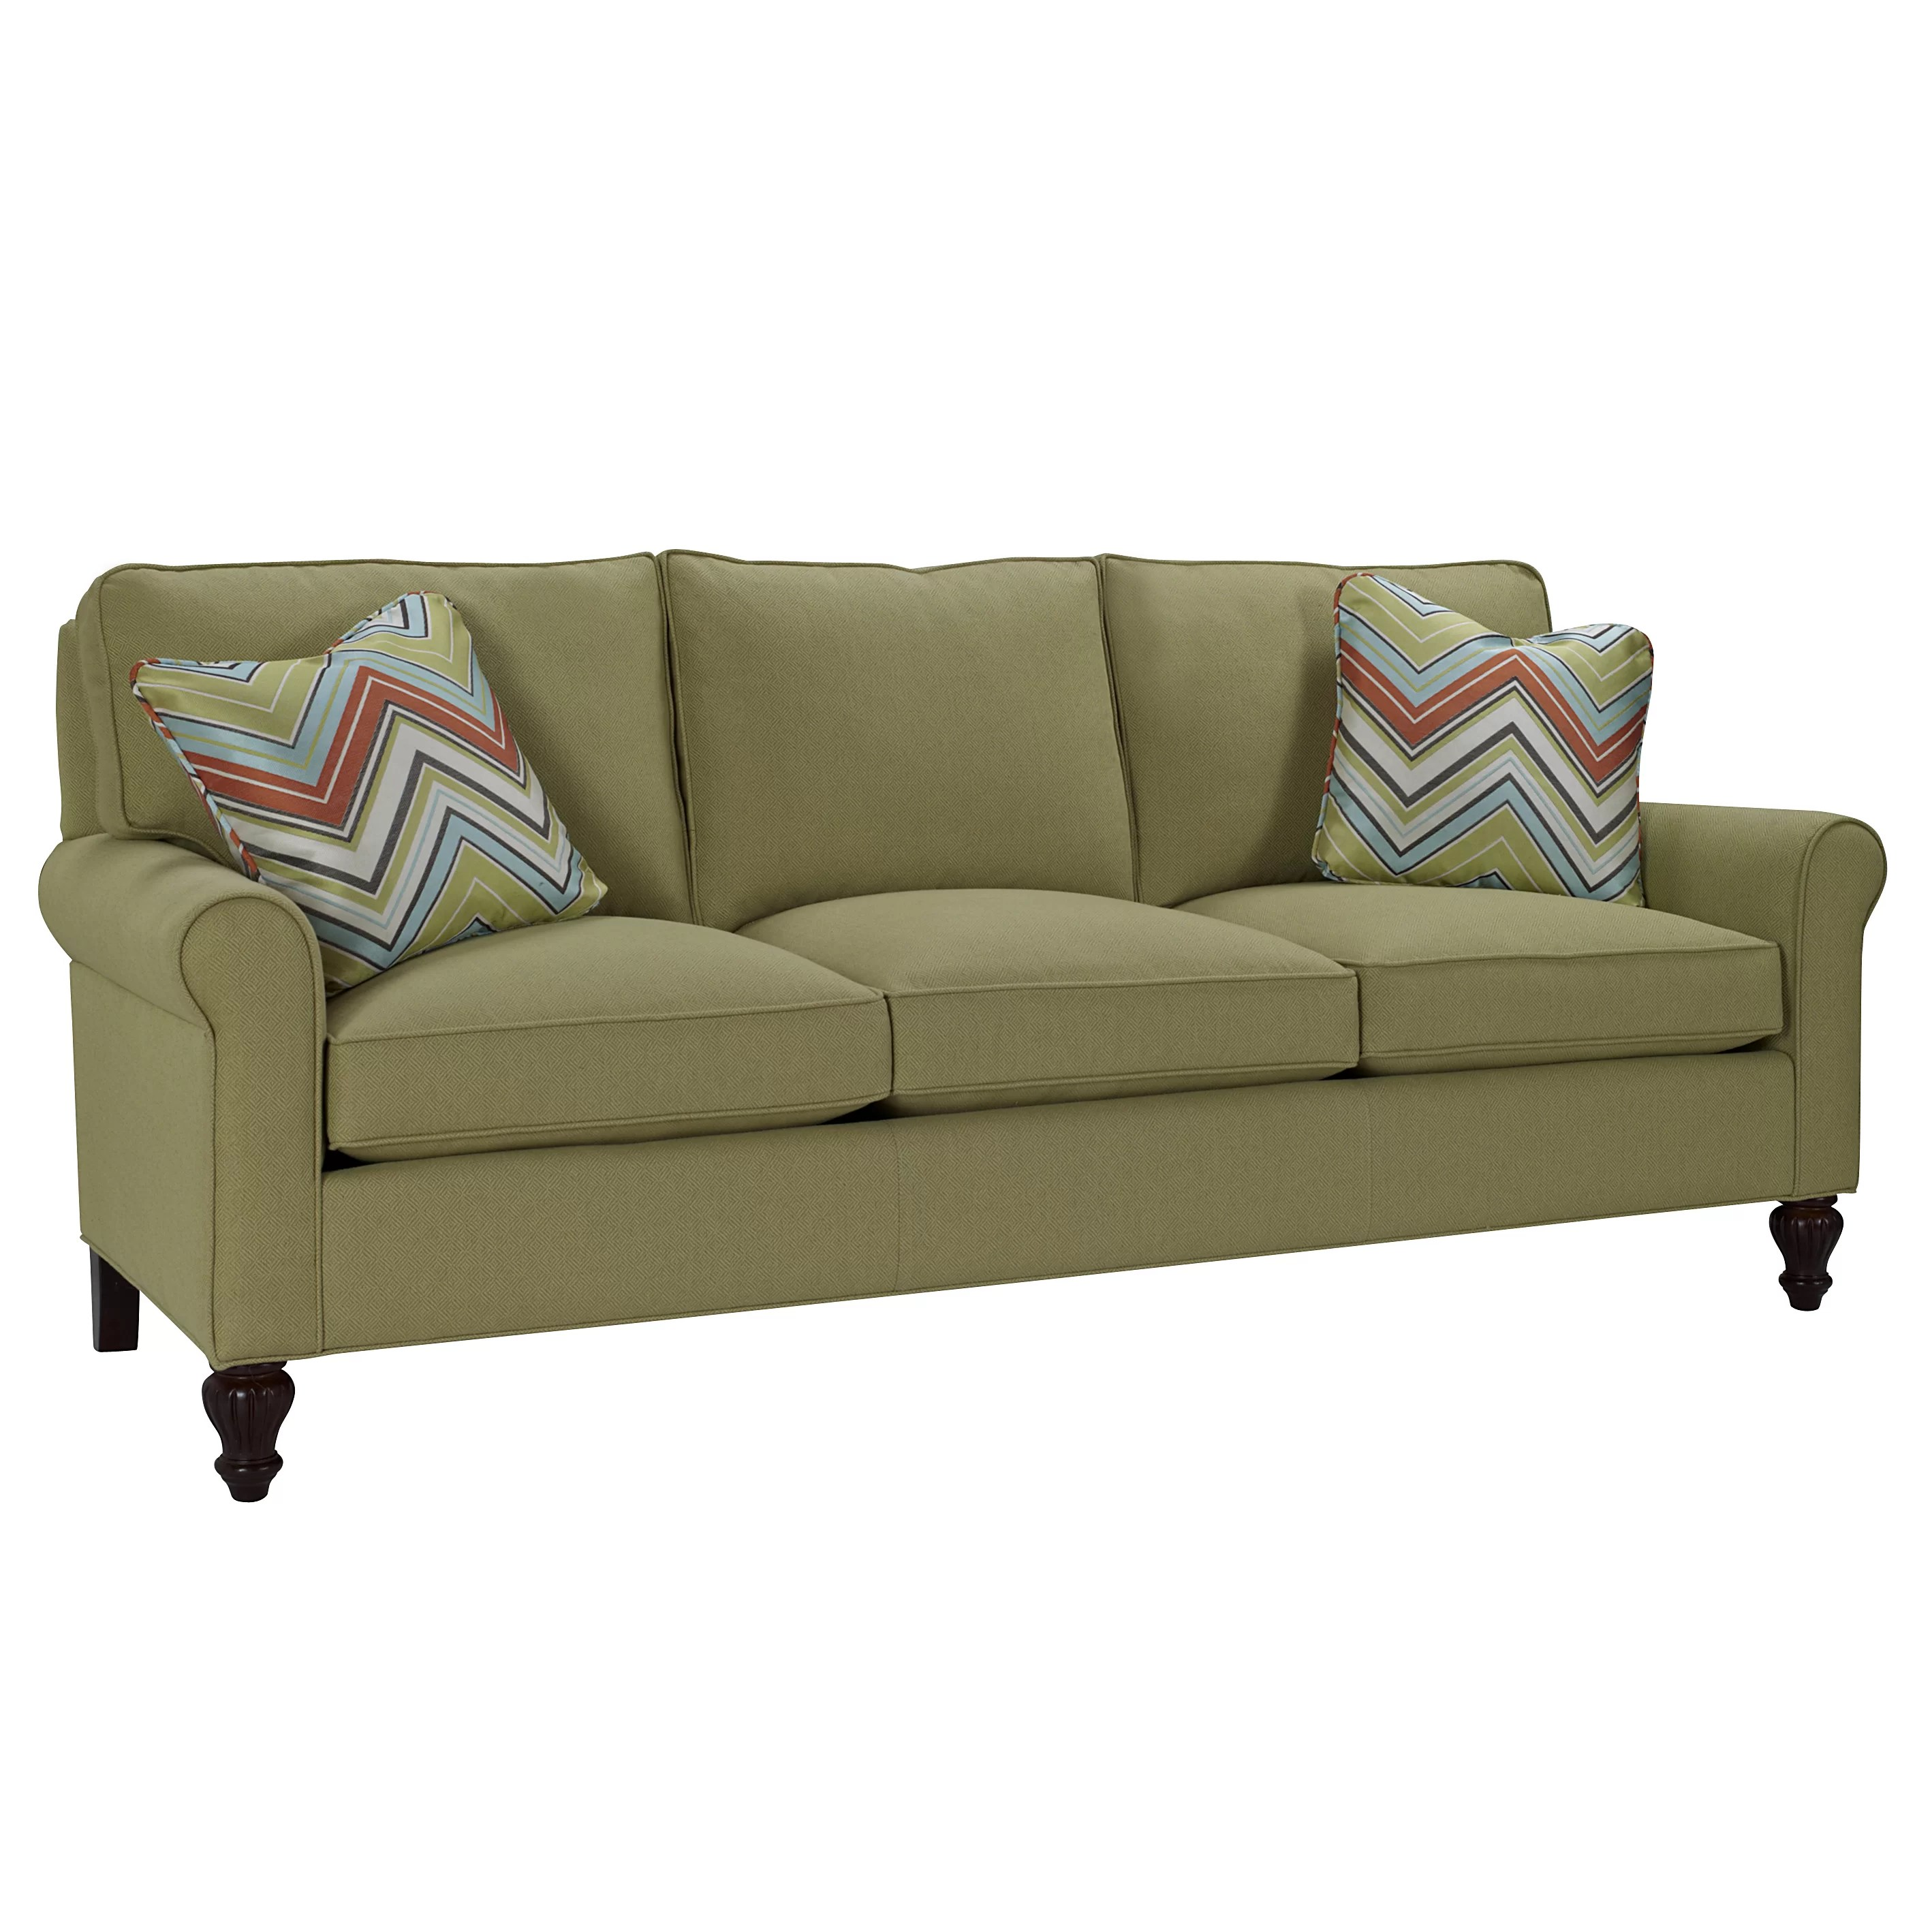 Classic Comfort Curved Arm Three Loose Pillow Back Sofa